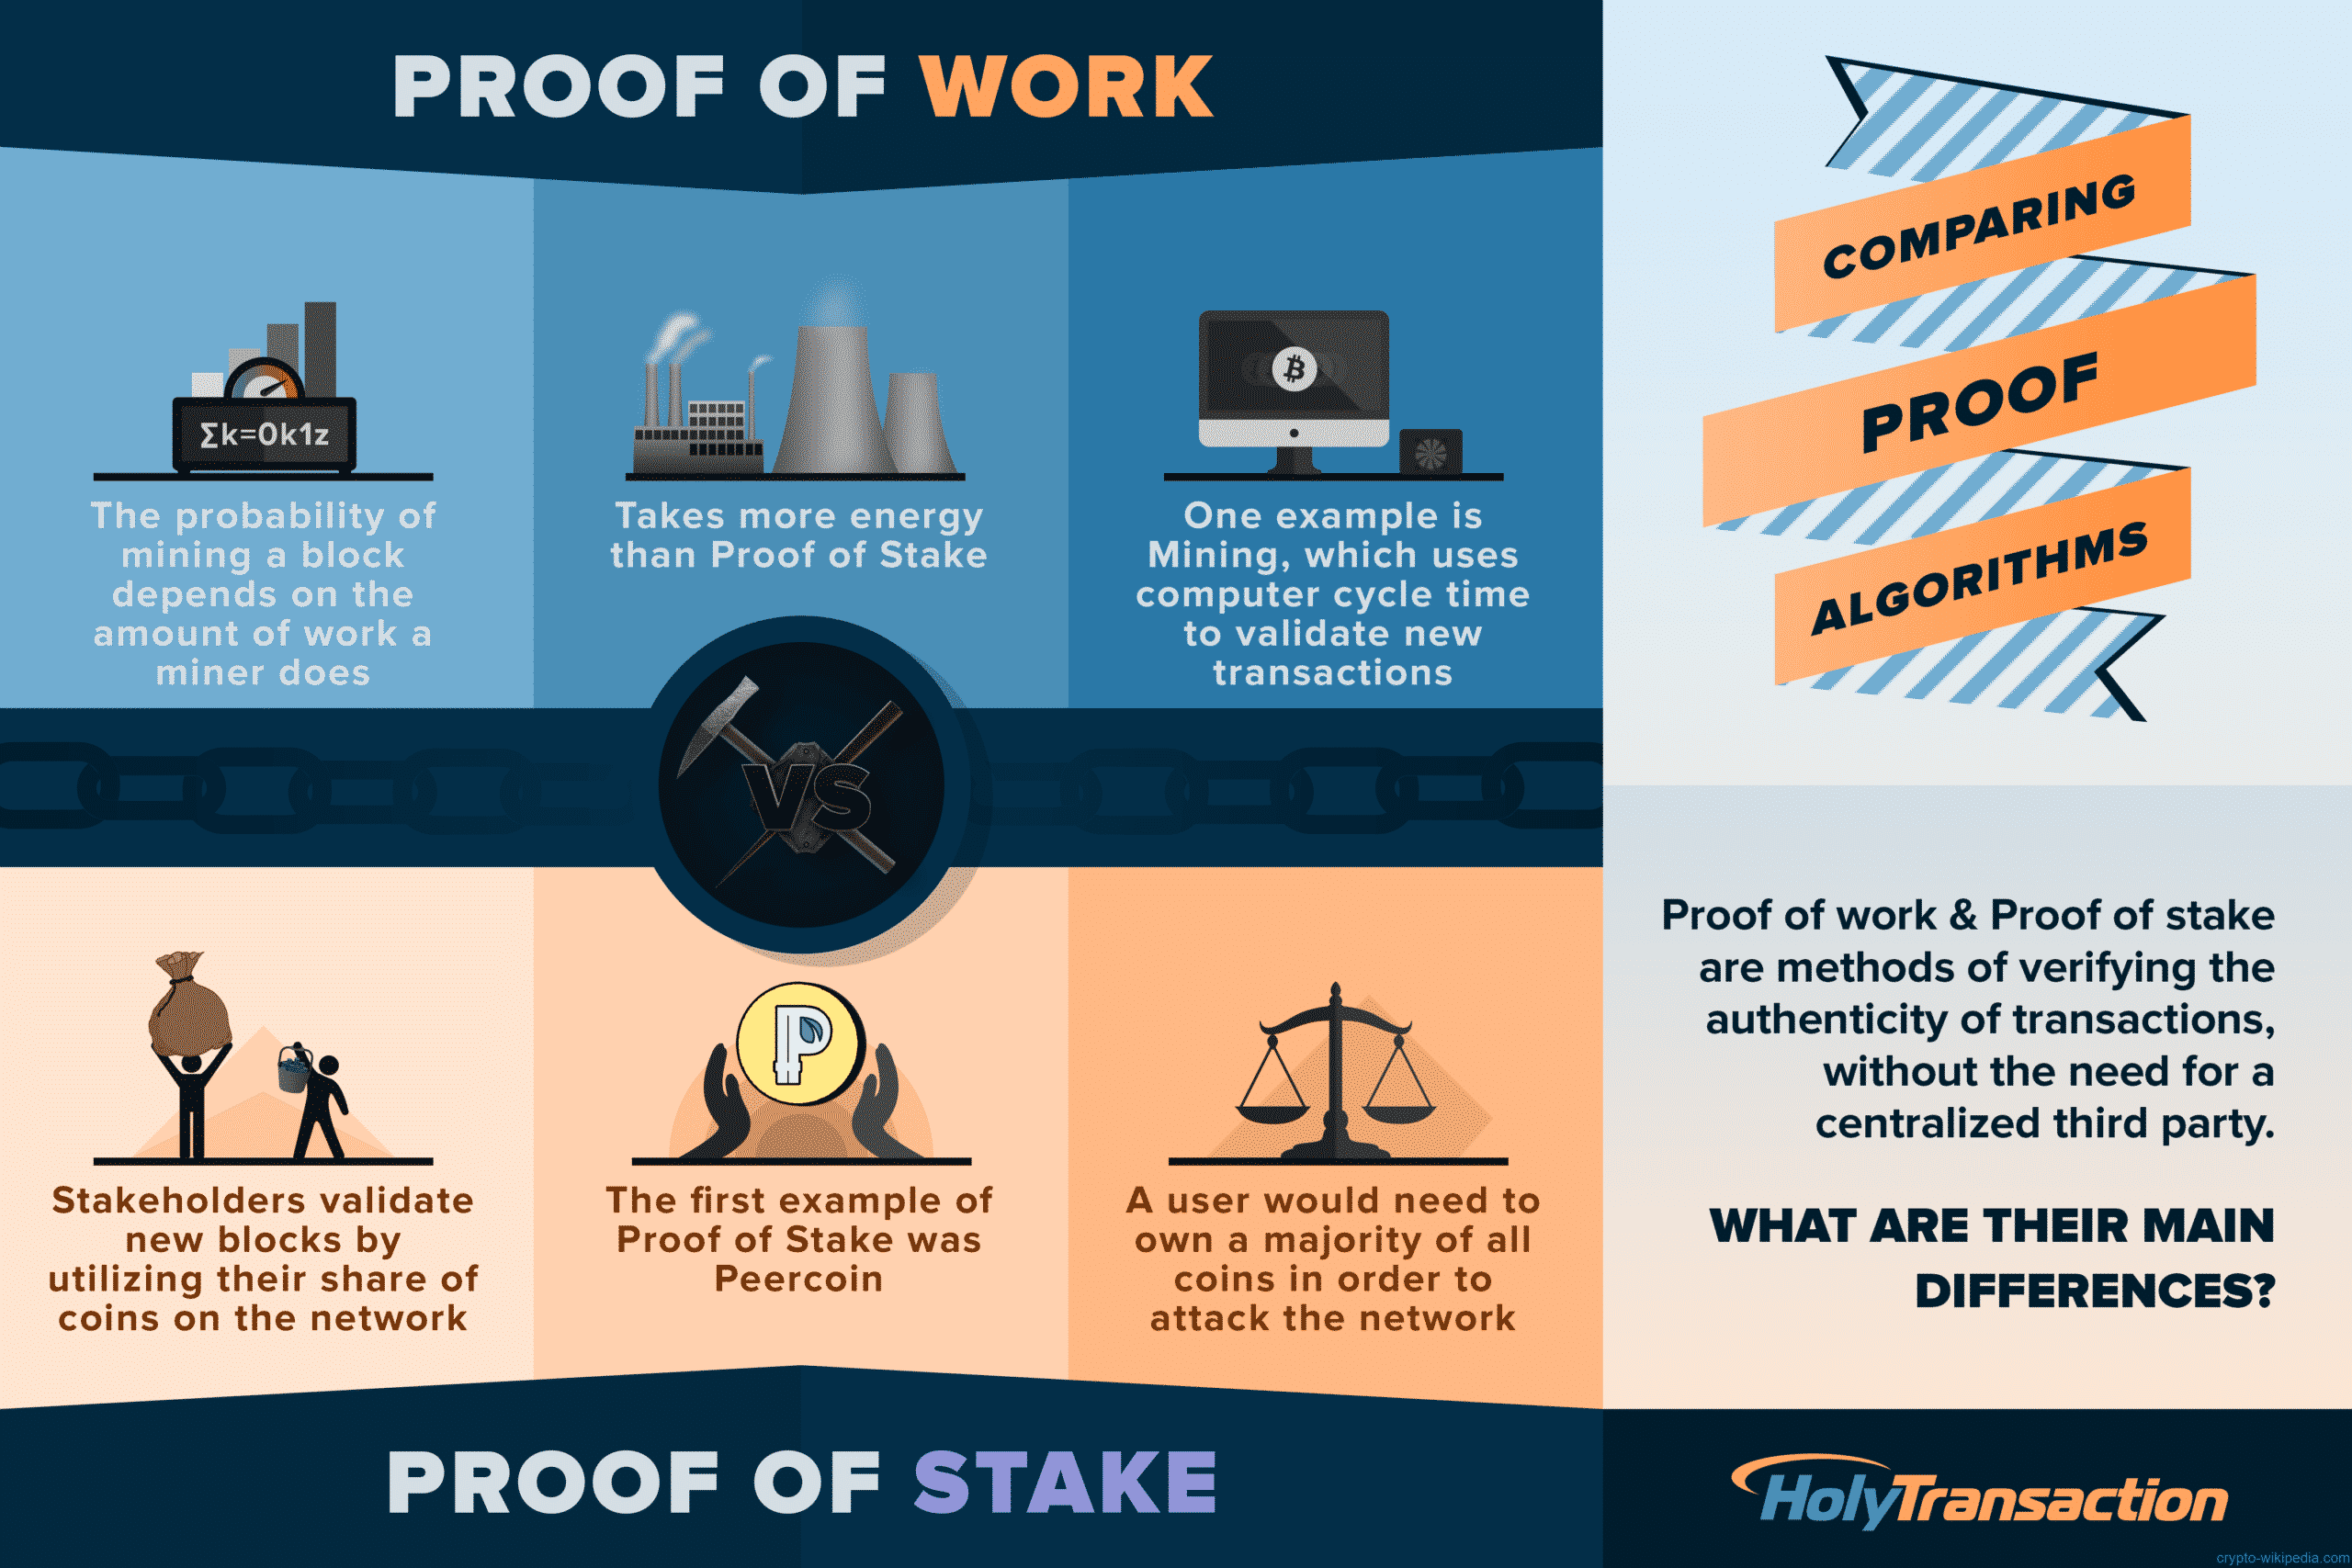 Proof-of-Work and Proof-of-Stake